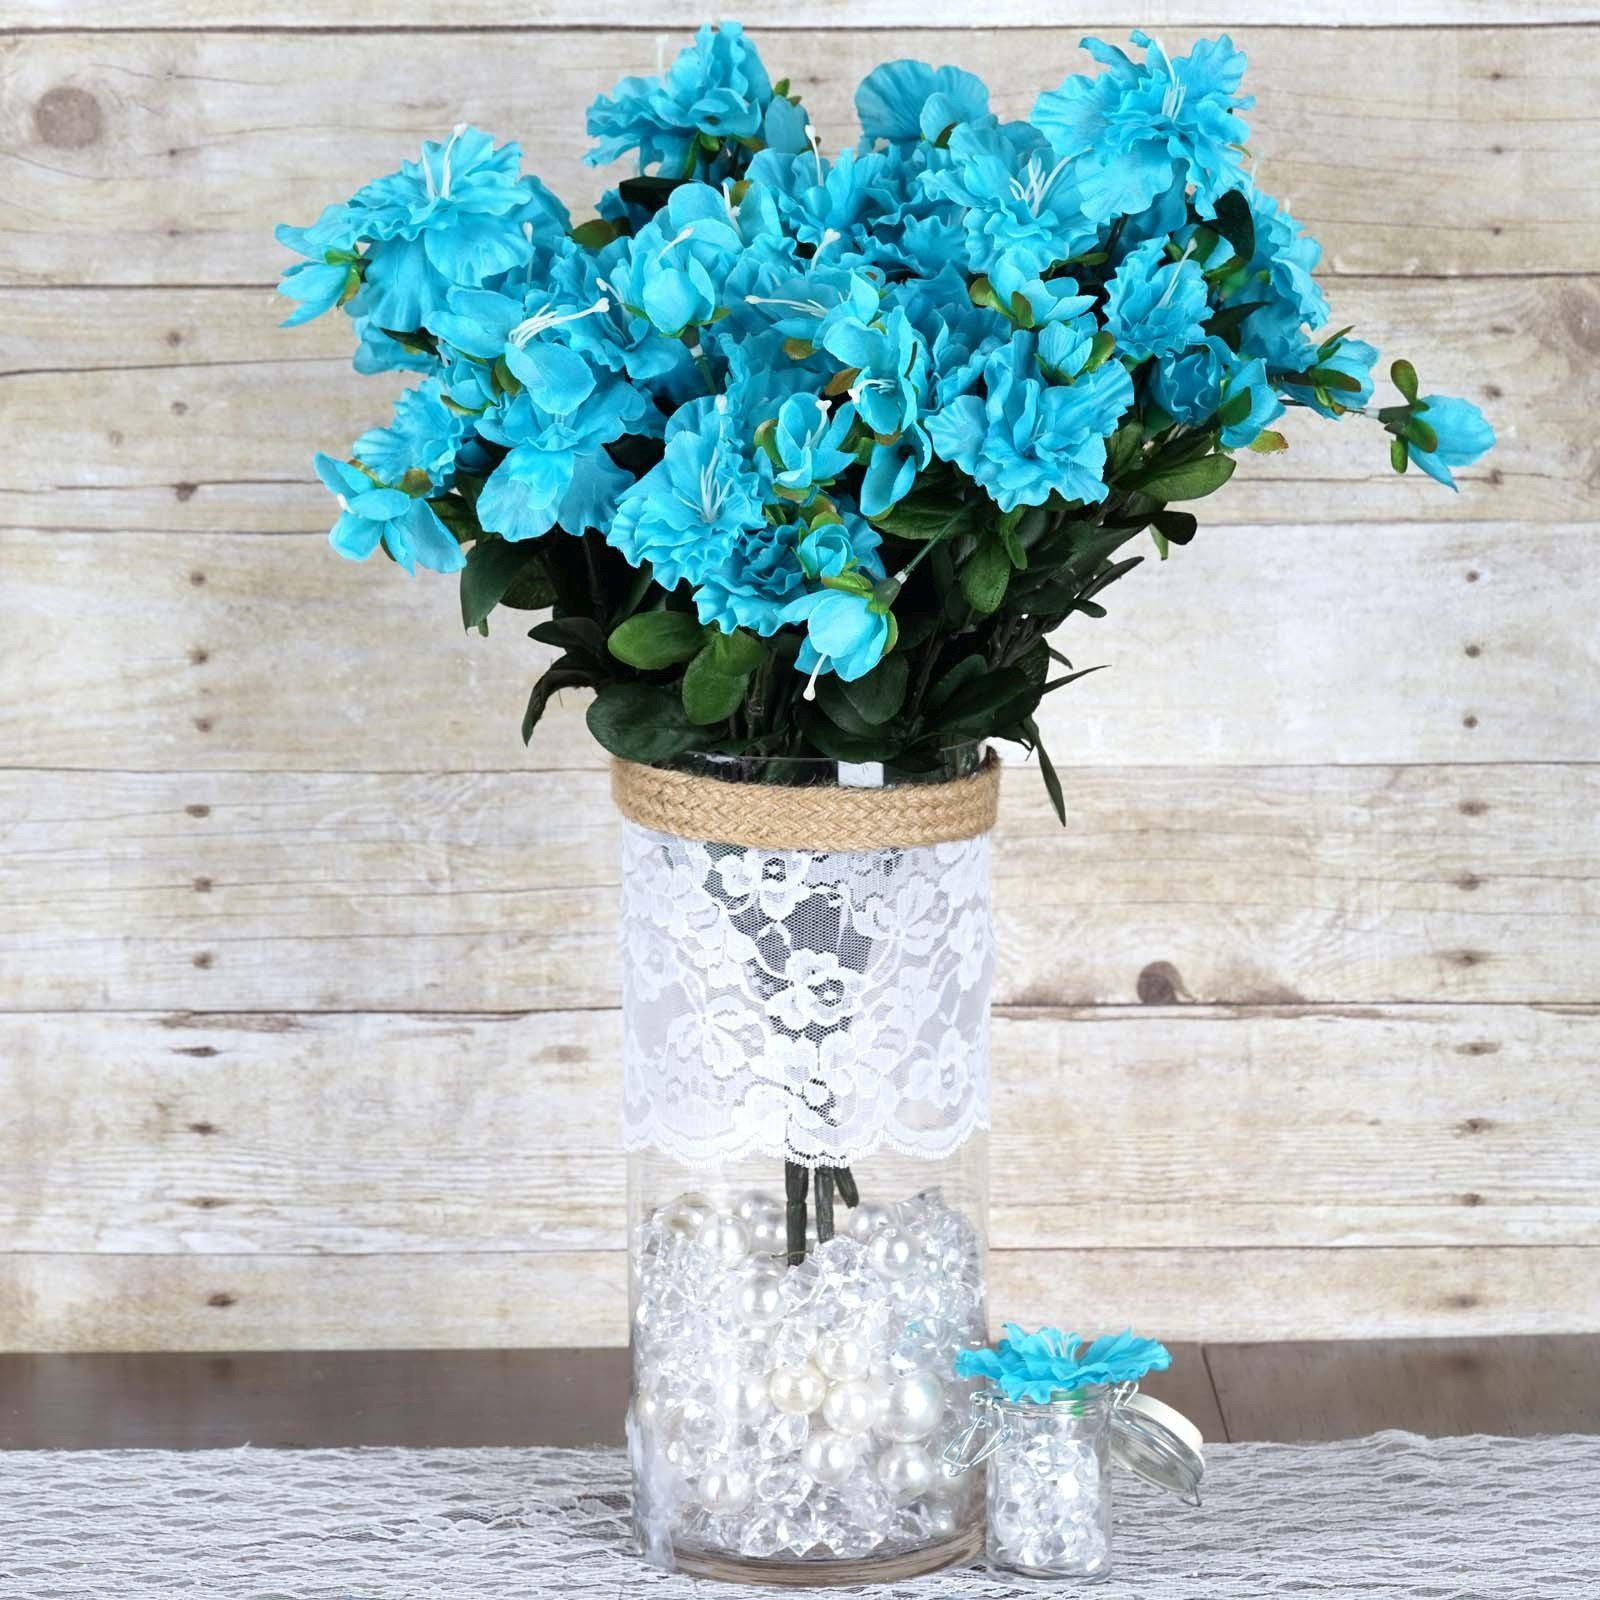 120 Wholesale Artificial Silk Gardenias Flowers Wedding Vase ...